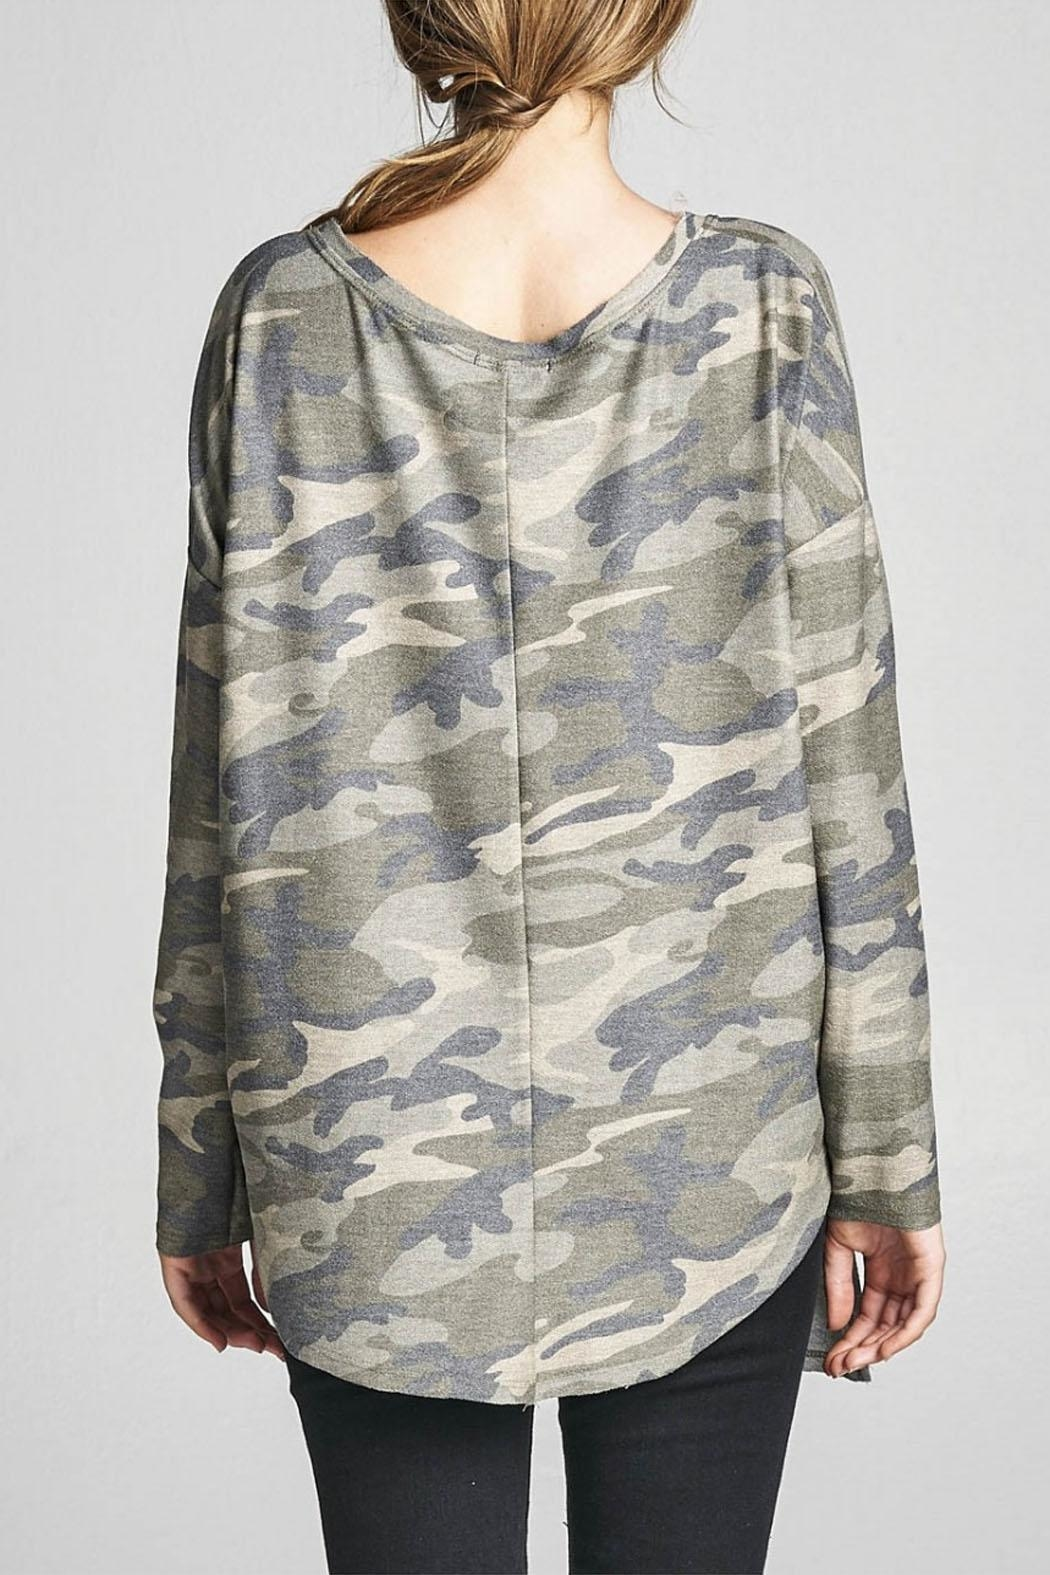 Cotton Bleu Camo Crew Neck Top - Side Cropped Image